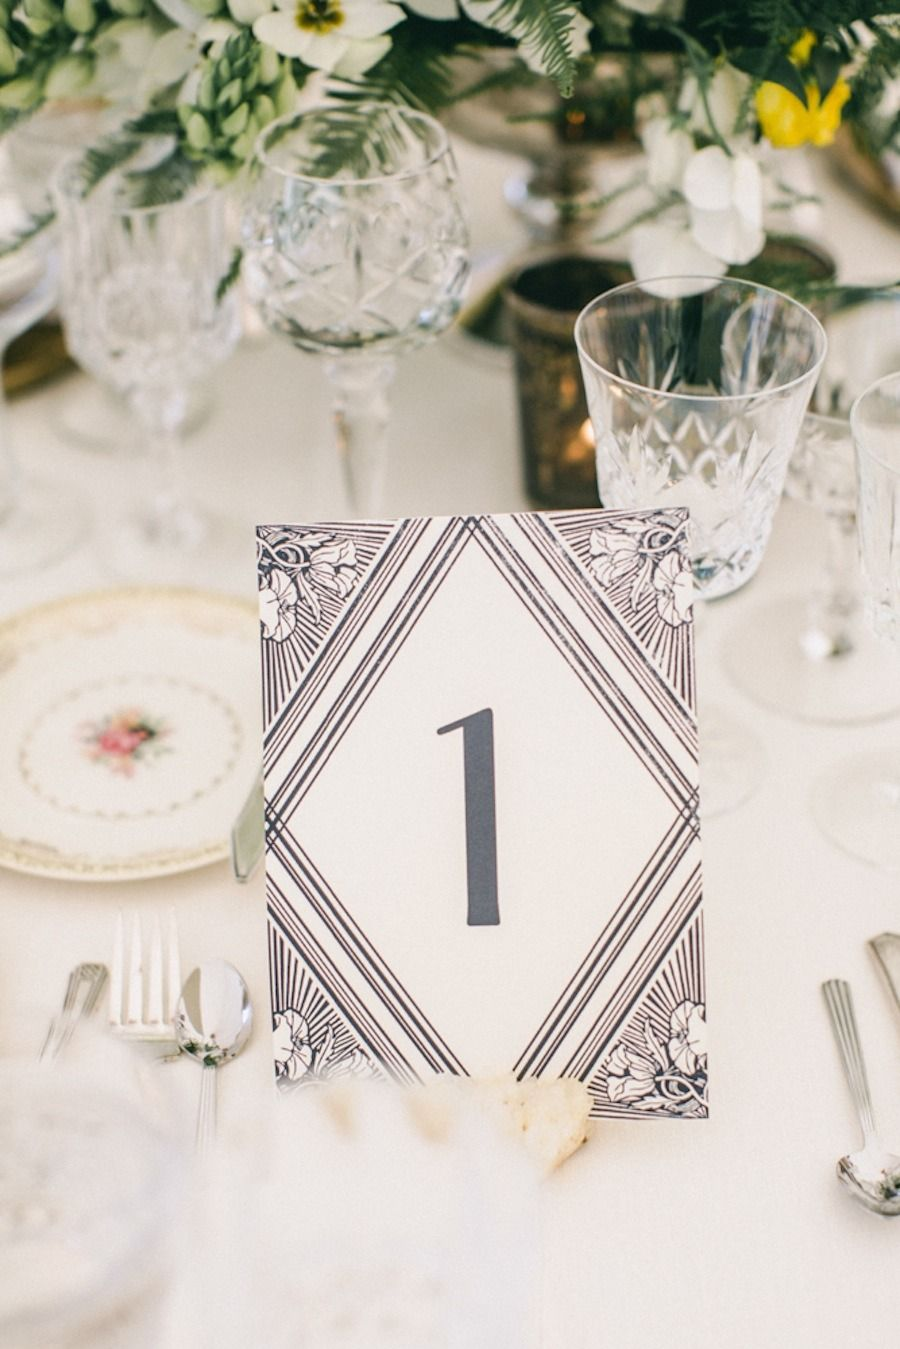 1920s Inspired Healdsburg Wedding | Table numbers, Art deco and 1920s